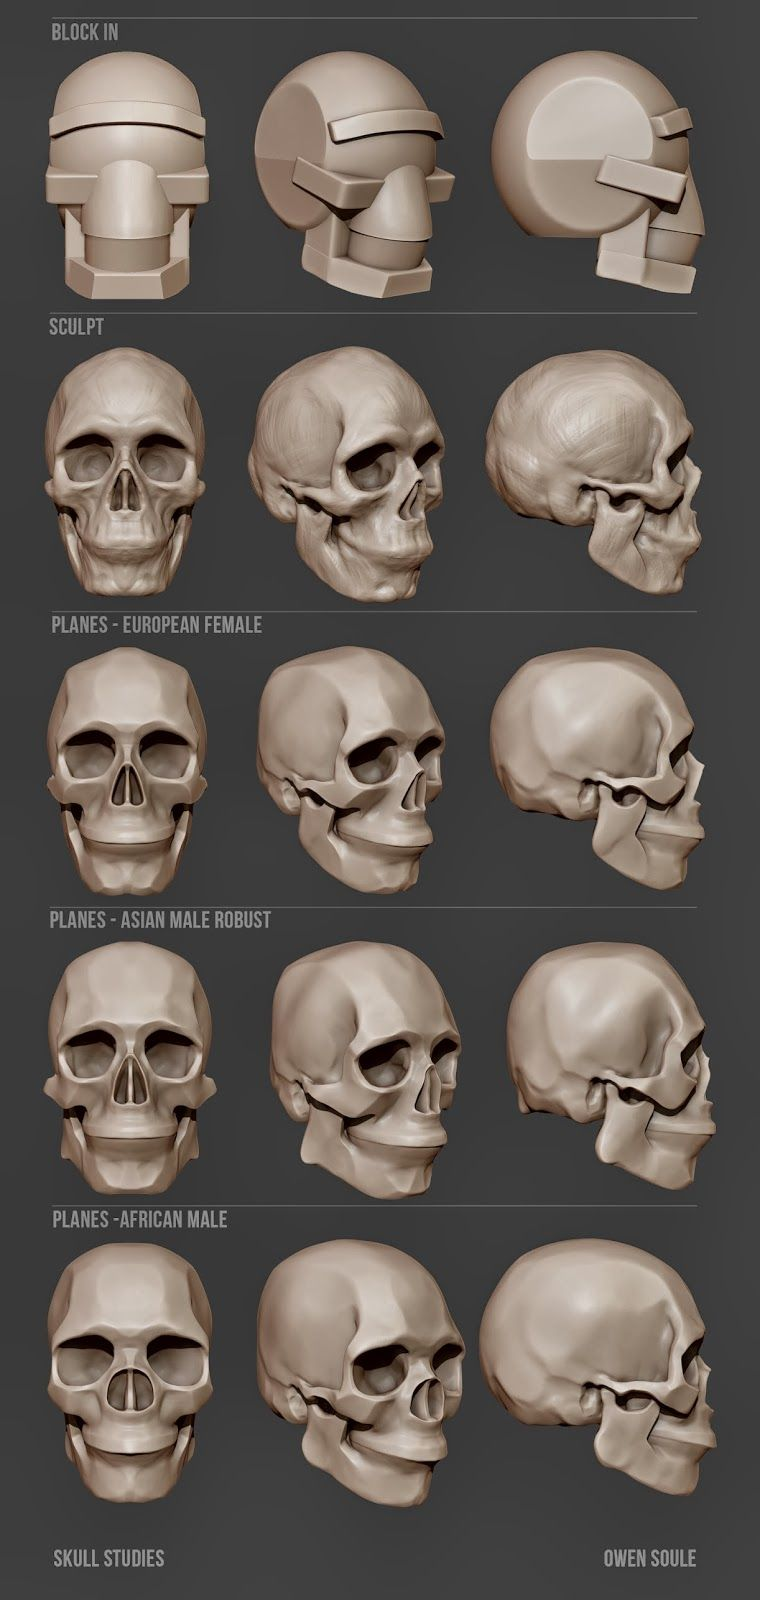 Pin by Johnny Walker on Sculpture | Pinterest | Anatomy, ZBrush and 3d